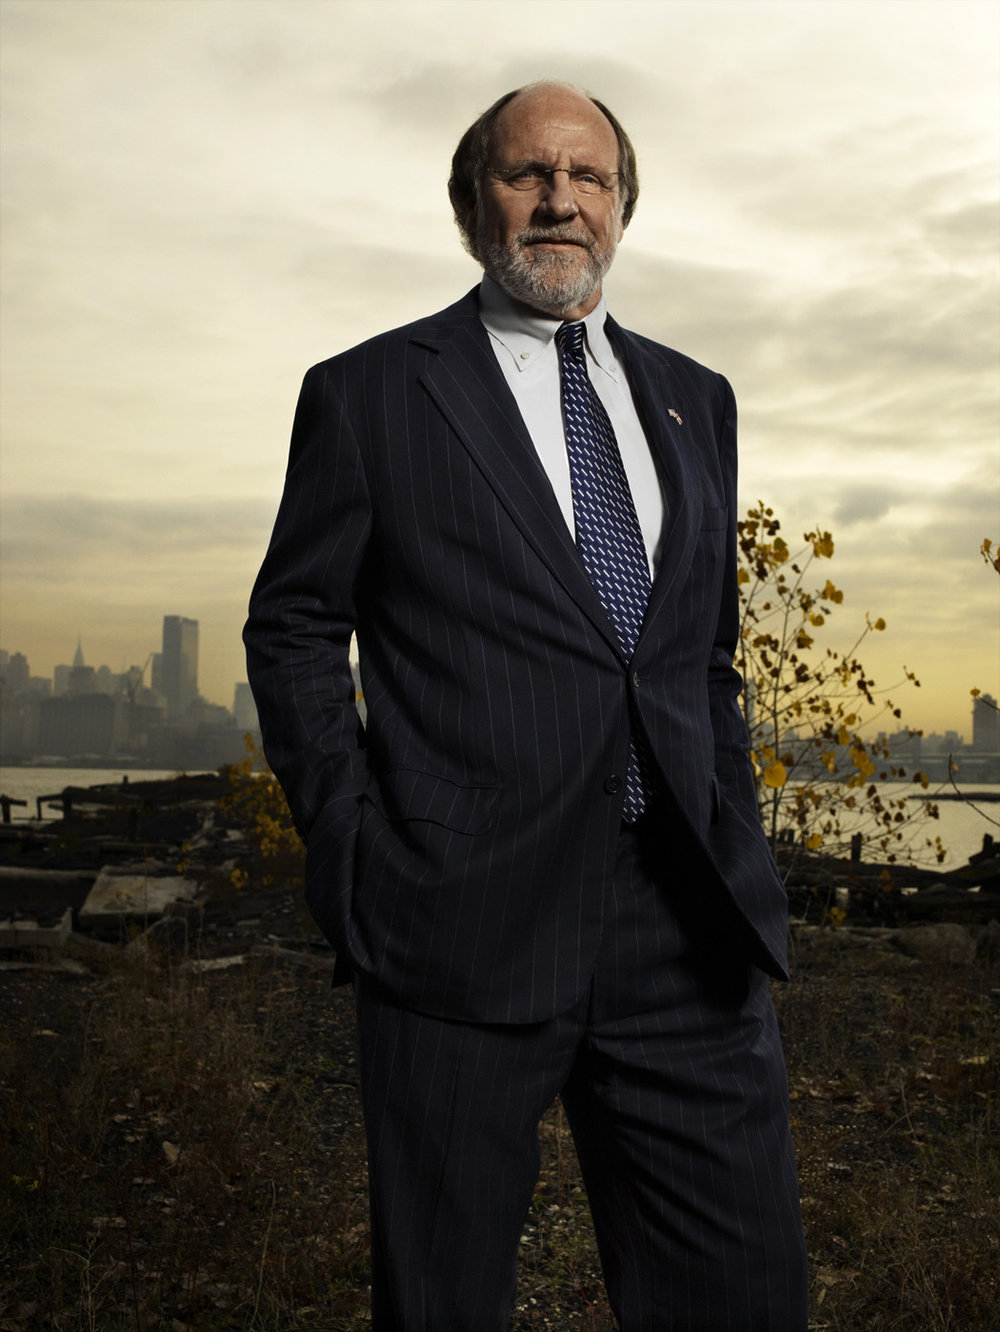 Jon_Corzine_00010_074-2_MR.jpg